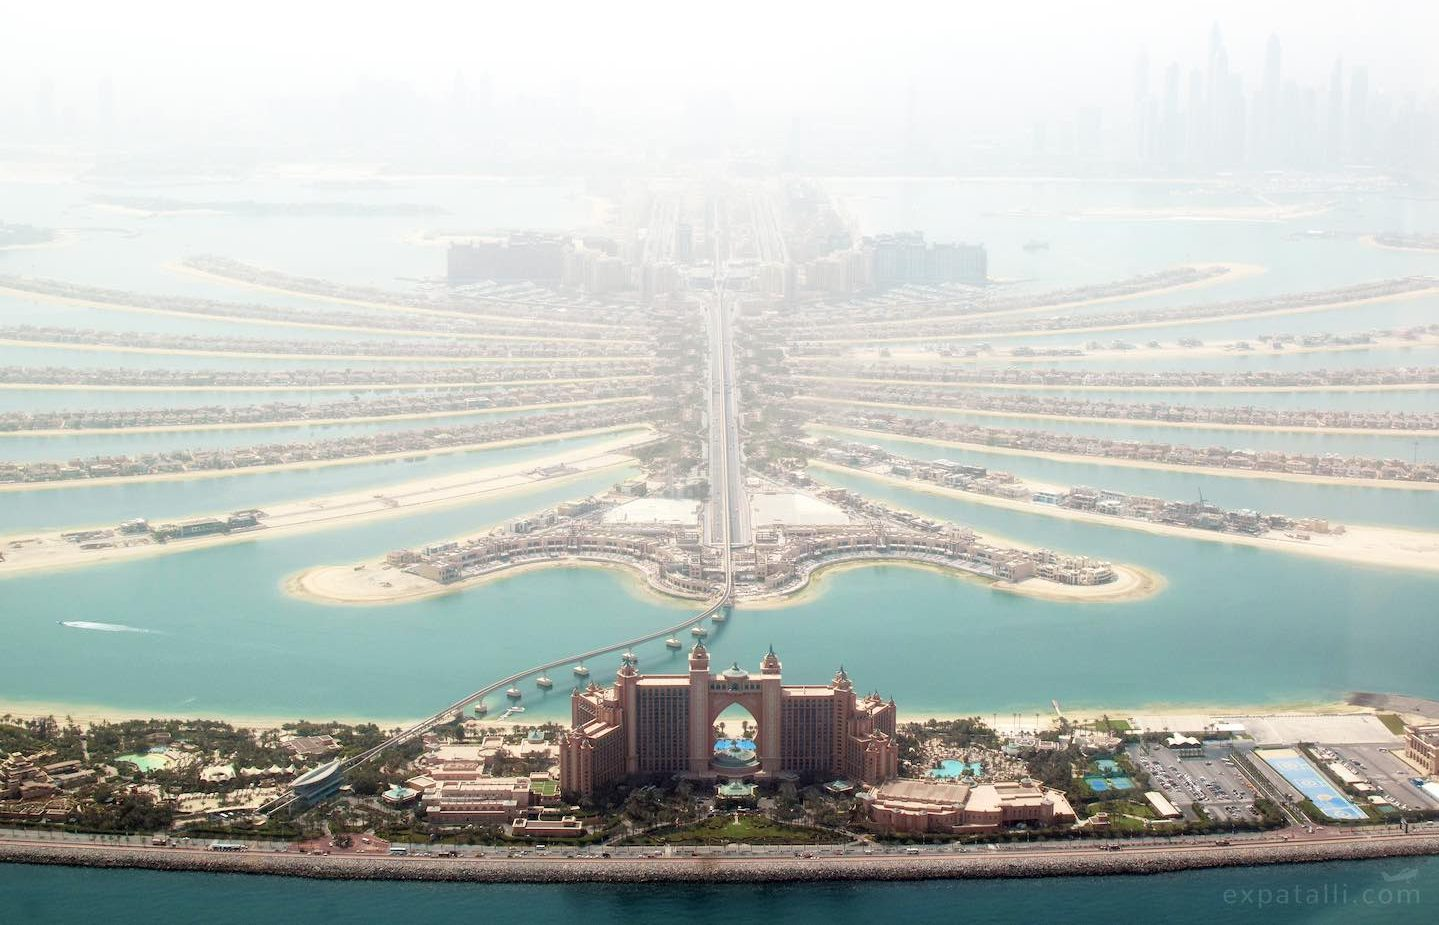 Aerial view of the Palm, with Atlantis hotel | Image © ExpatAlli.com